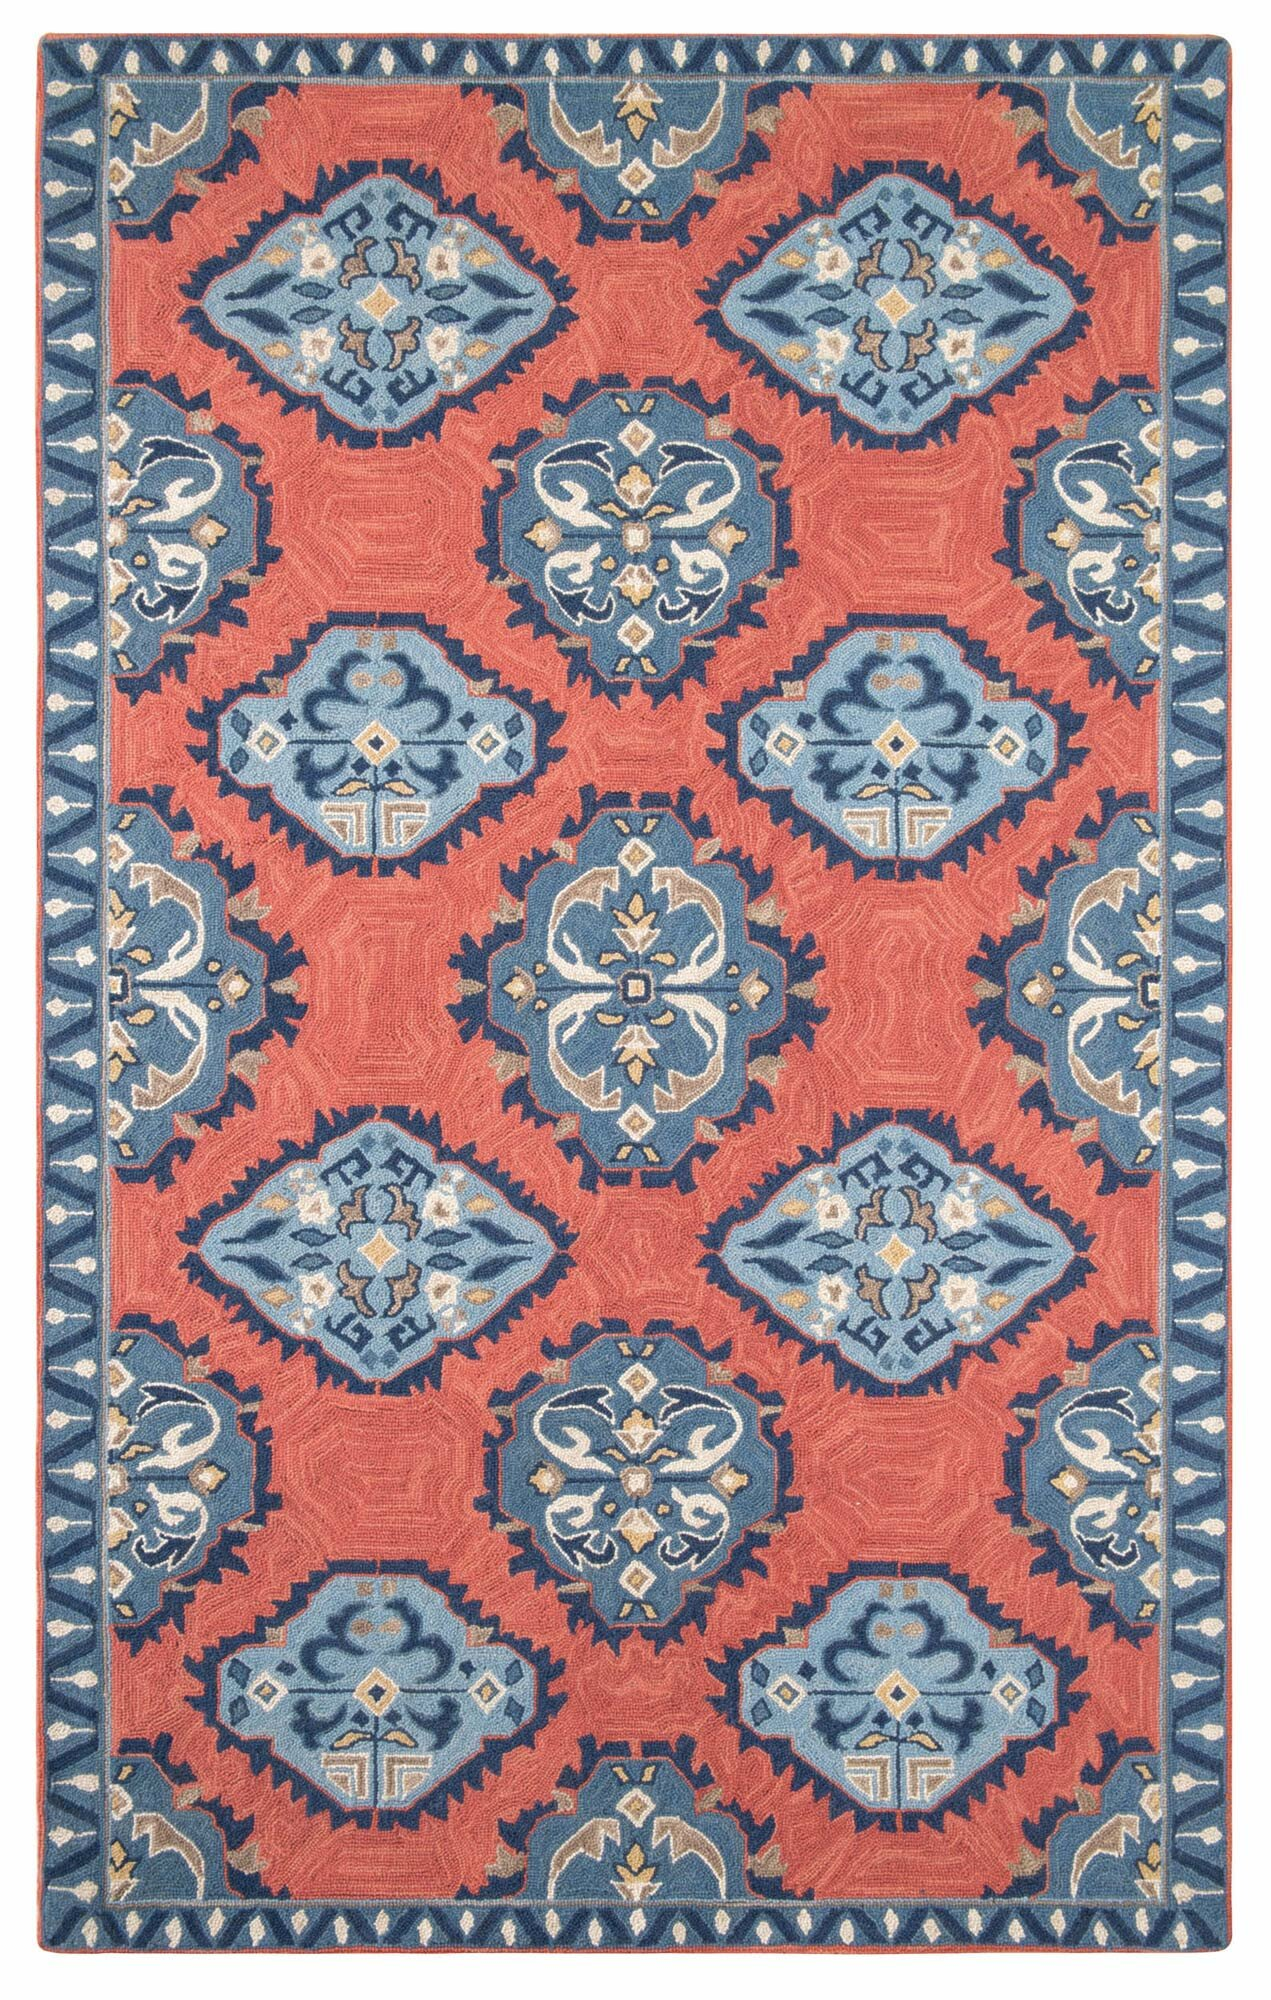 Companyc Old Glory Hand Hooked Wool Newport Red Blue Area Rug